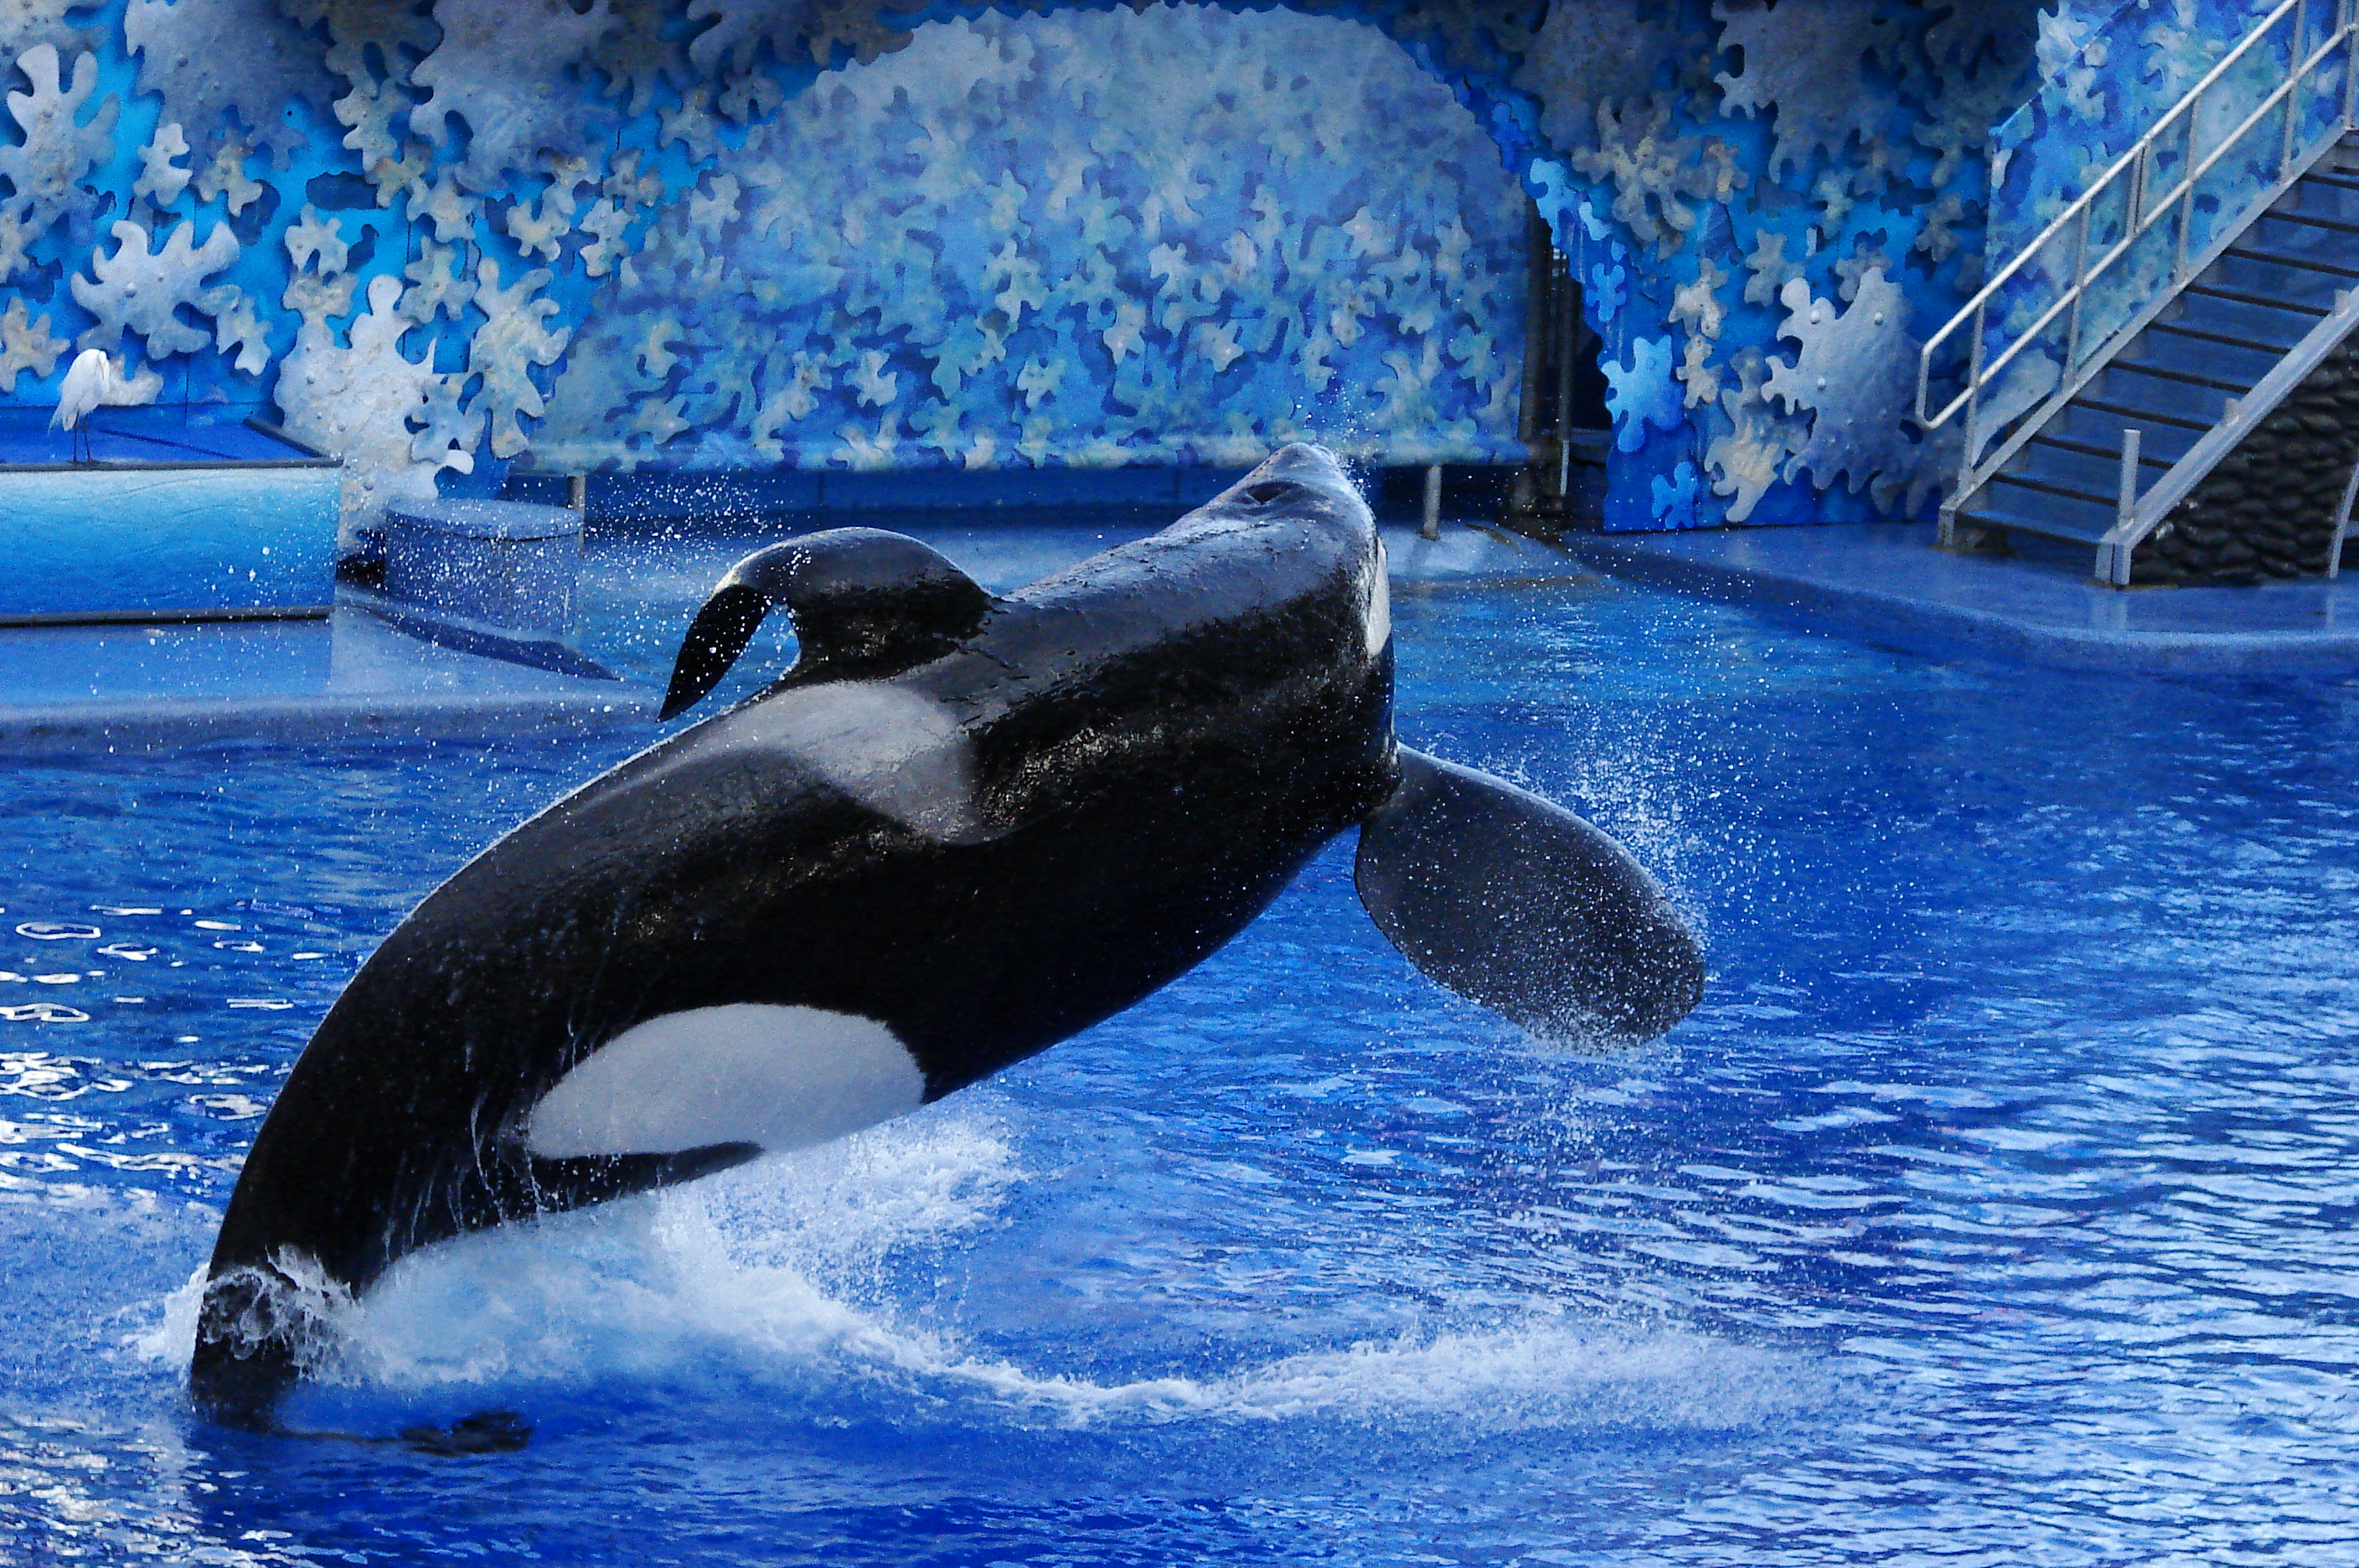 Tilikum (orca) - Wikipedia, the free encyclopediatilikum